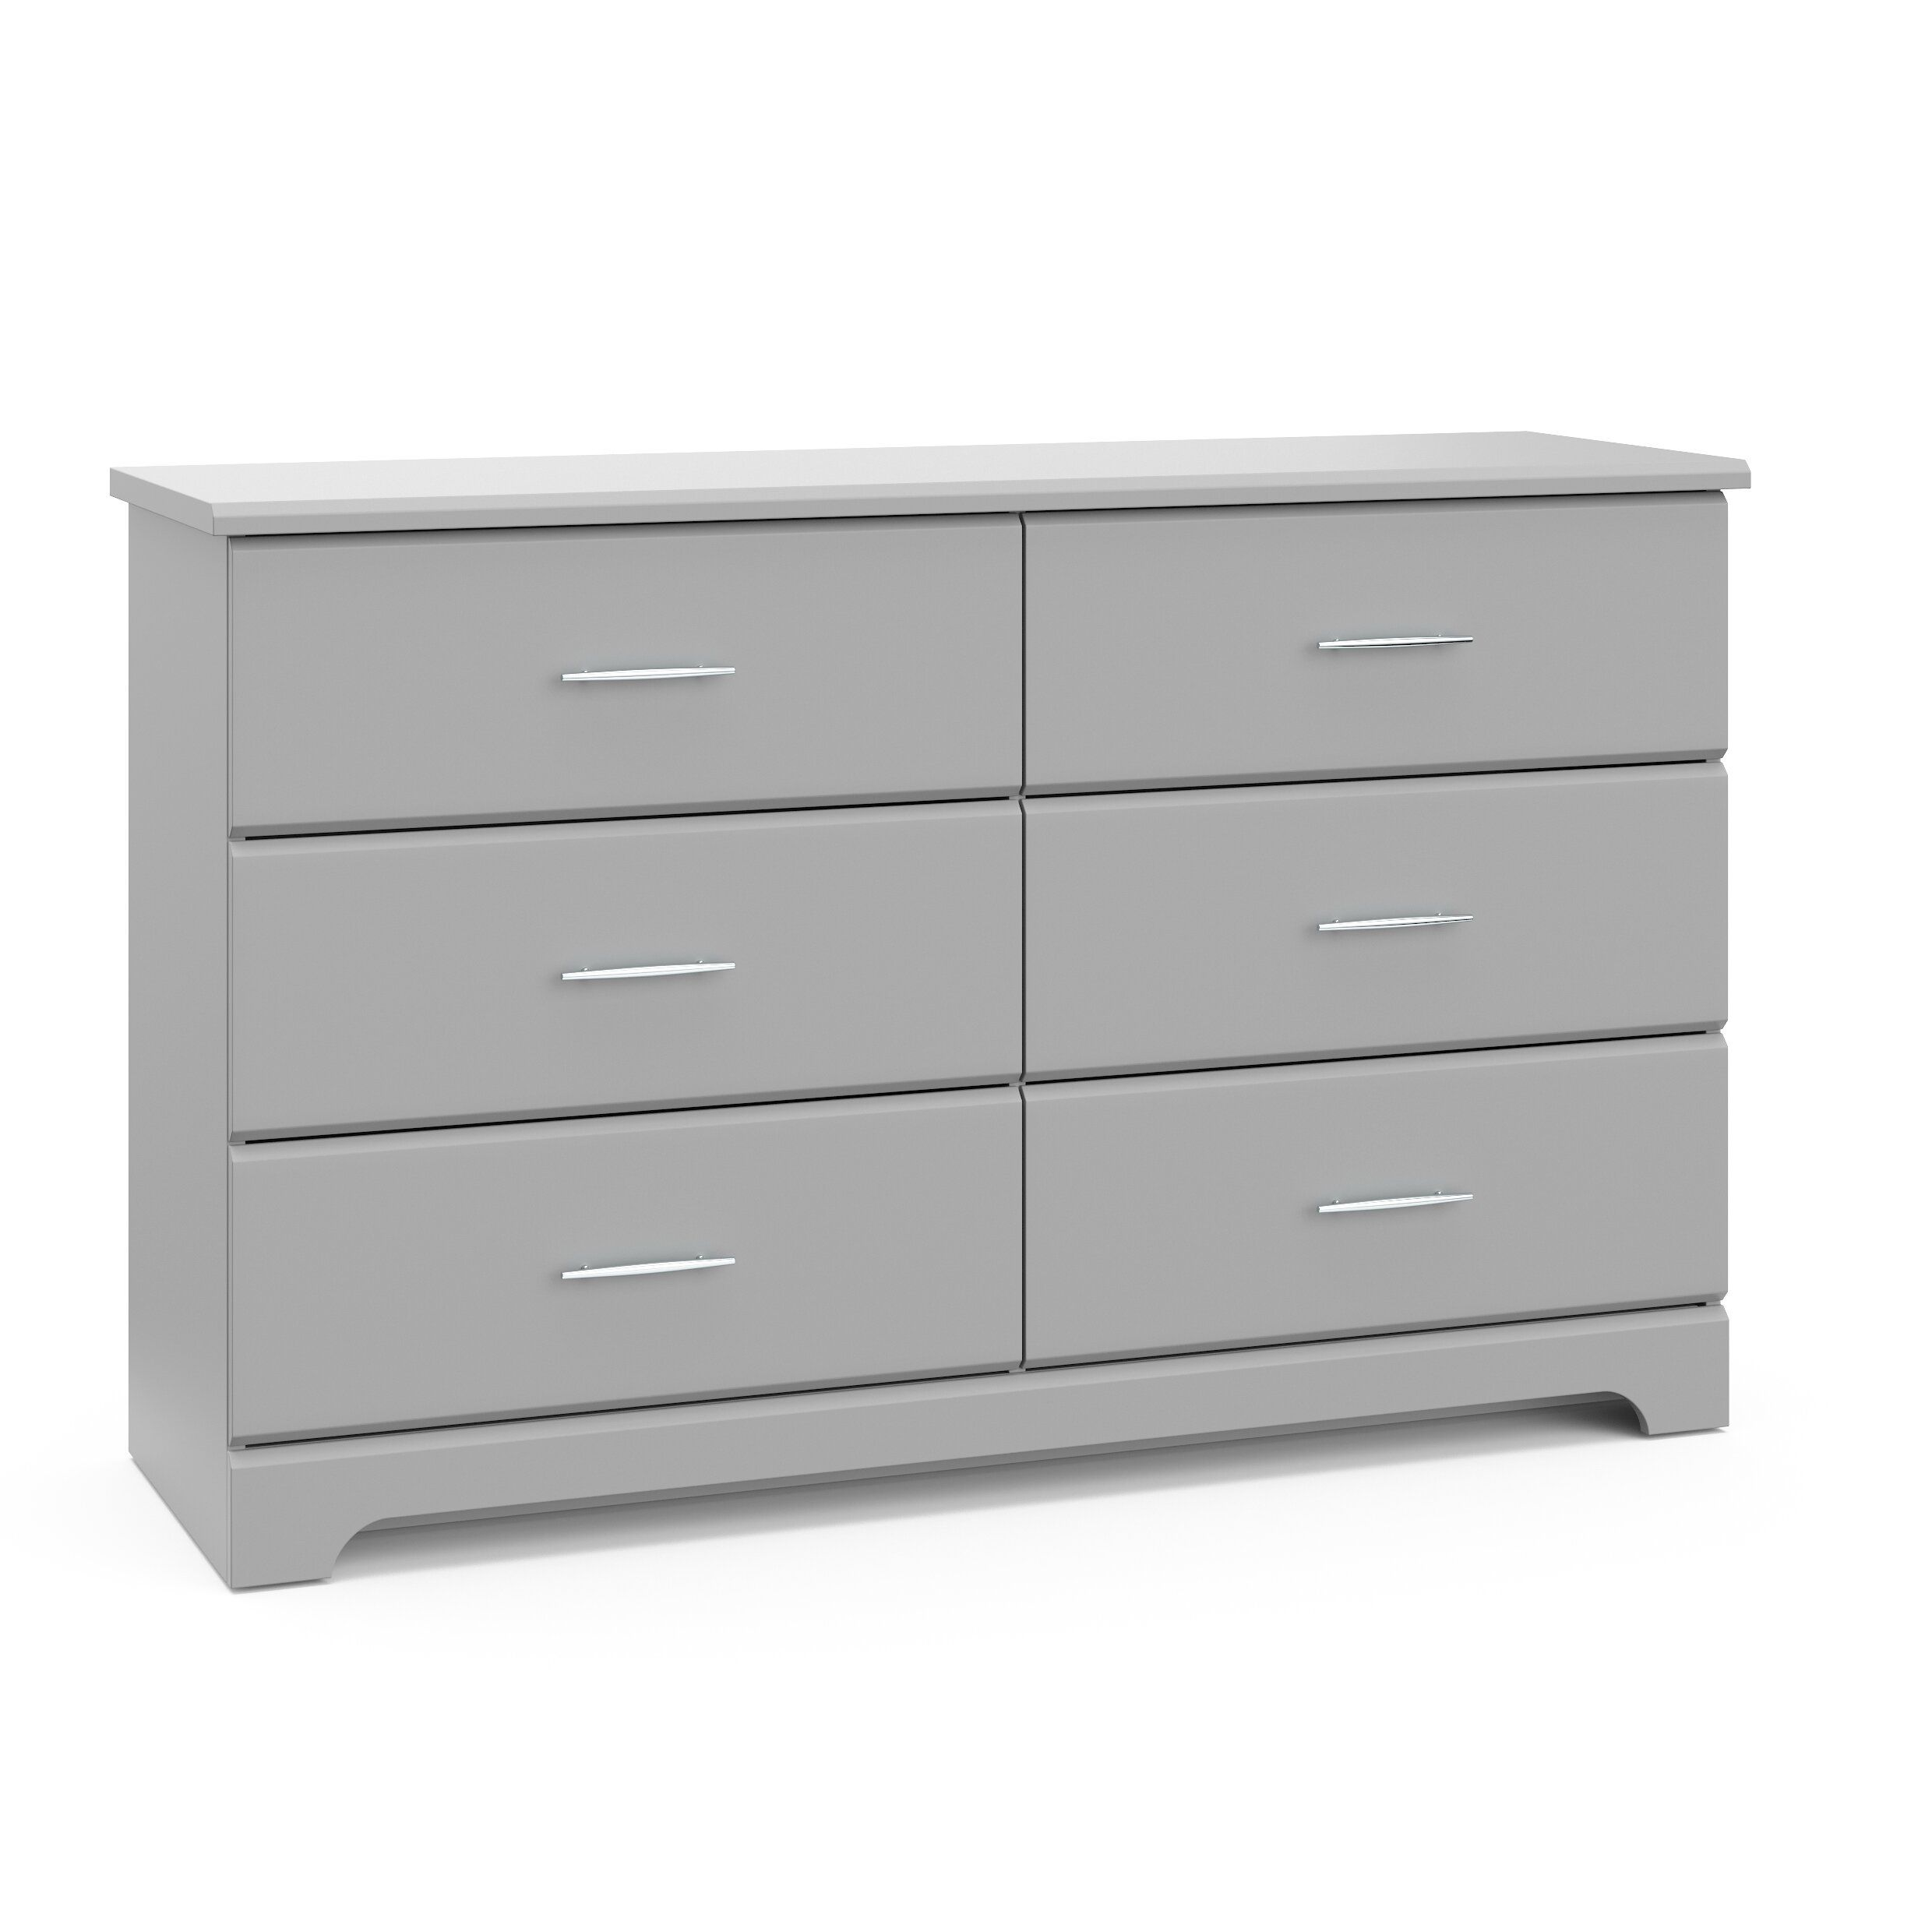 Brookside 6 Drawer Double Dresser In 2021 Double Dresser 6 Drawer Dresser Dresser Drawers [ 2480 x 2480 Pixel ]